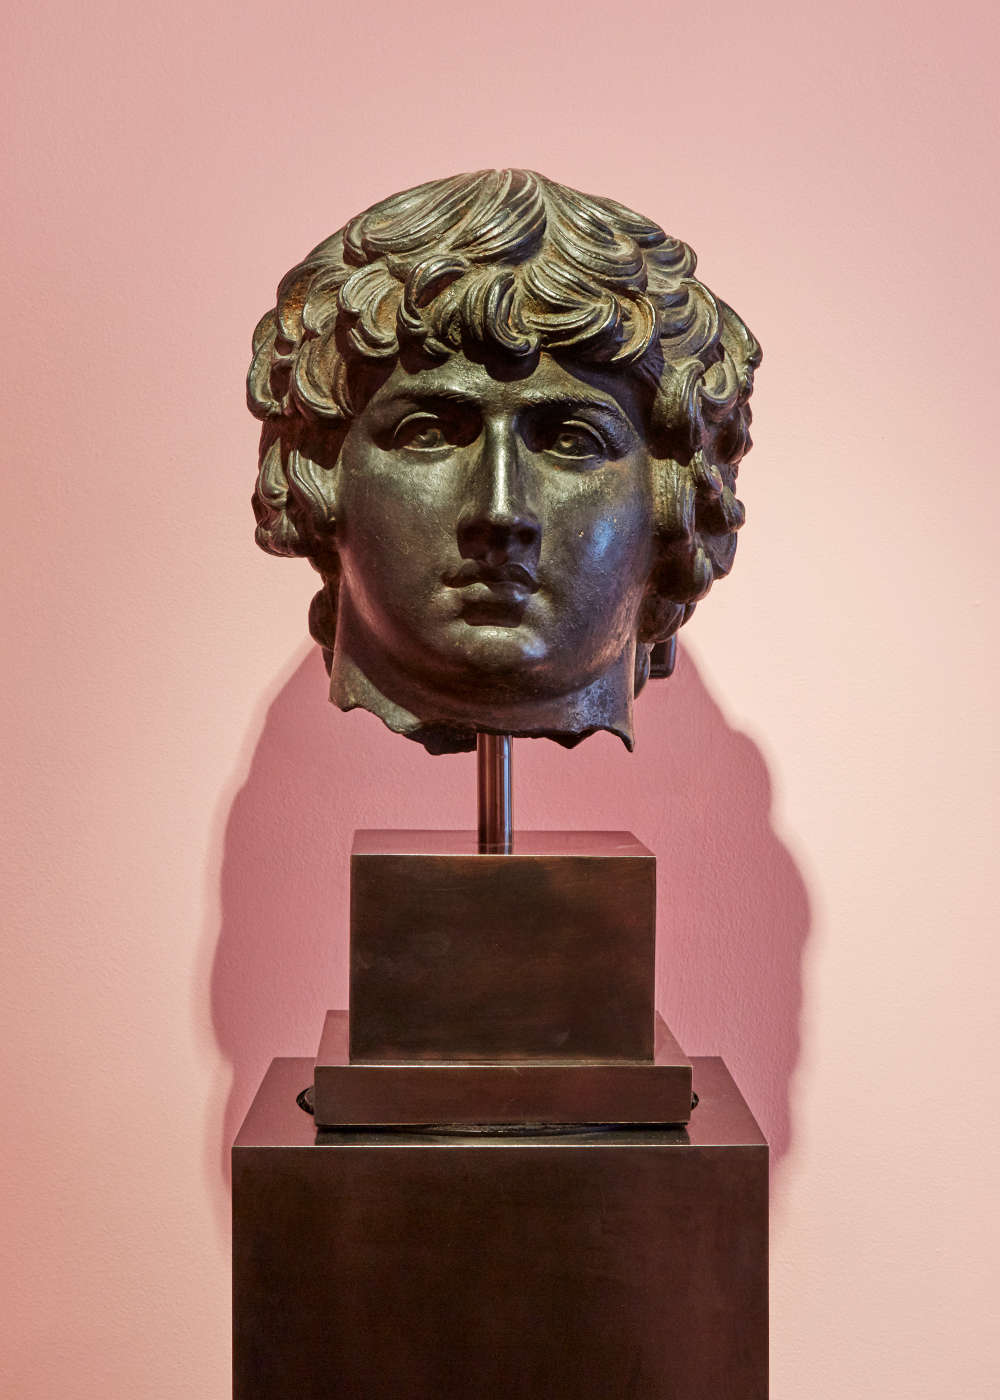 Revival Bust of Antinous, lover of Hadrian, 1700 - 1800 CE